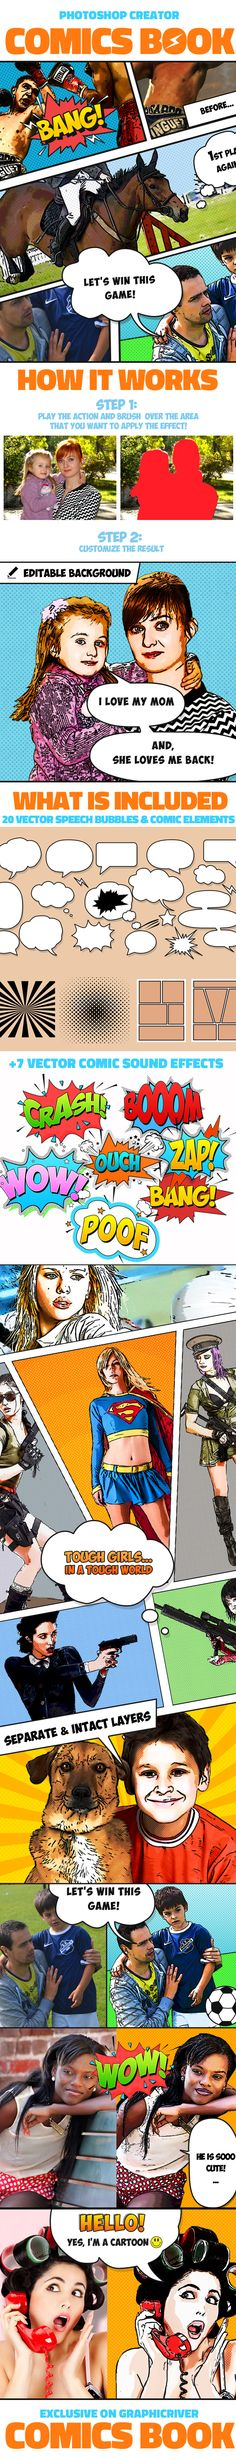 Buy Comics Book Photoshop Creator by psddude on GraphicRiver. How to make a comic book in Photoshop? This action creates Photoshop comic book effects from your images. Make A Comic Book, Free Comic Books, Comic Books Art, Comic Strip Template, Comic Strips, World Images, Book Images, Effects Photoshop, Photoshop Actions